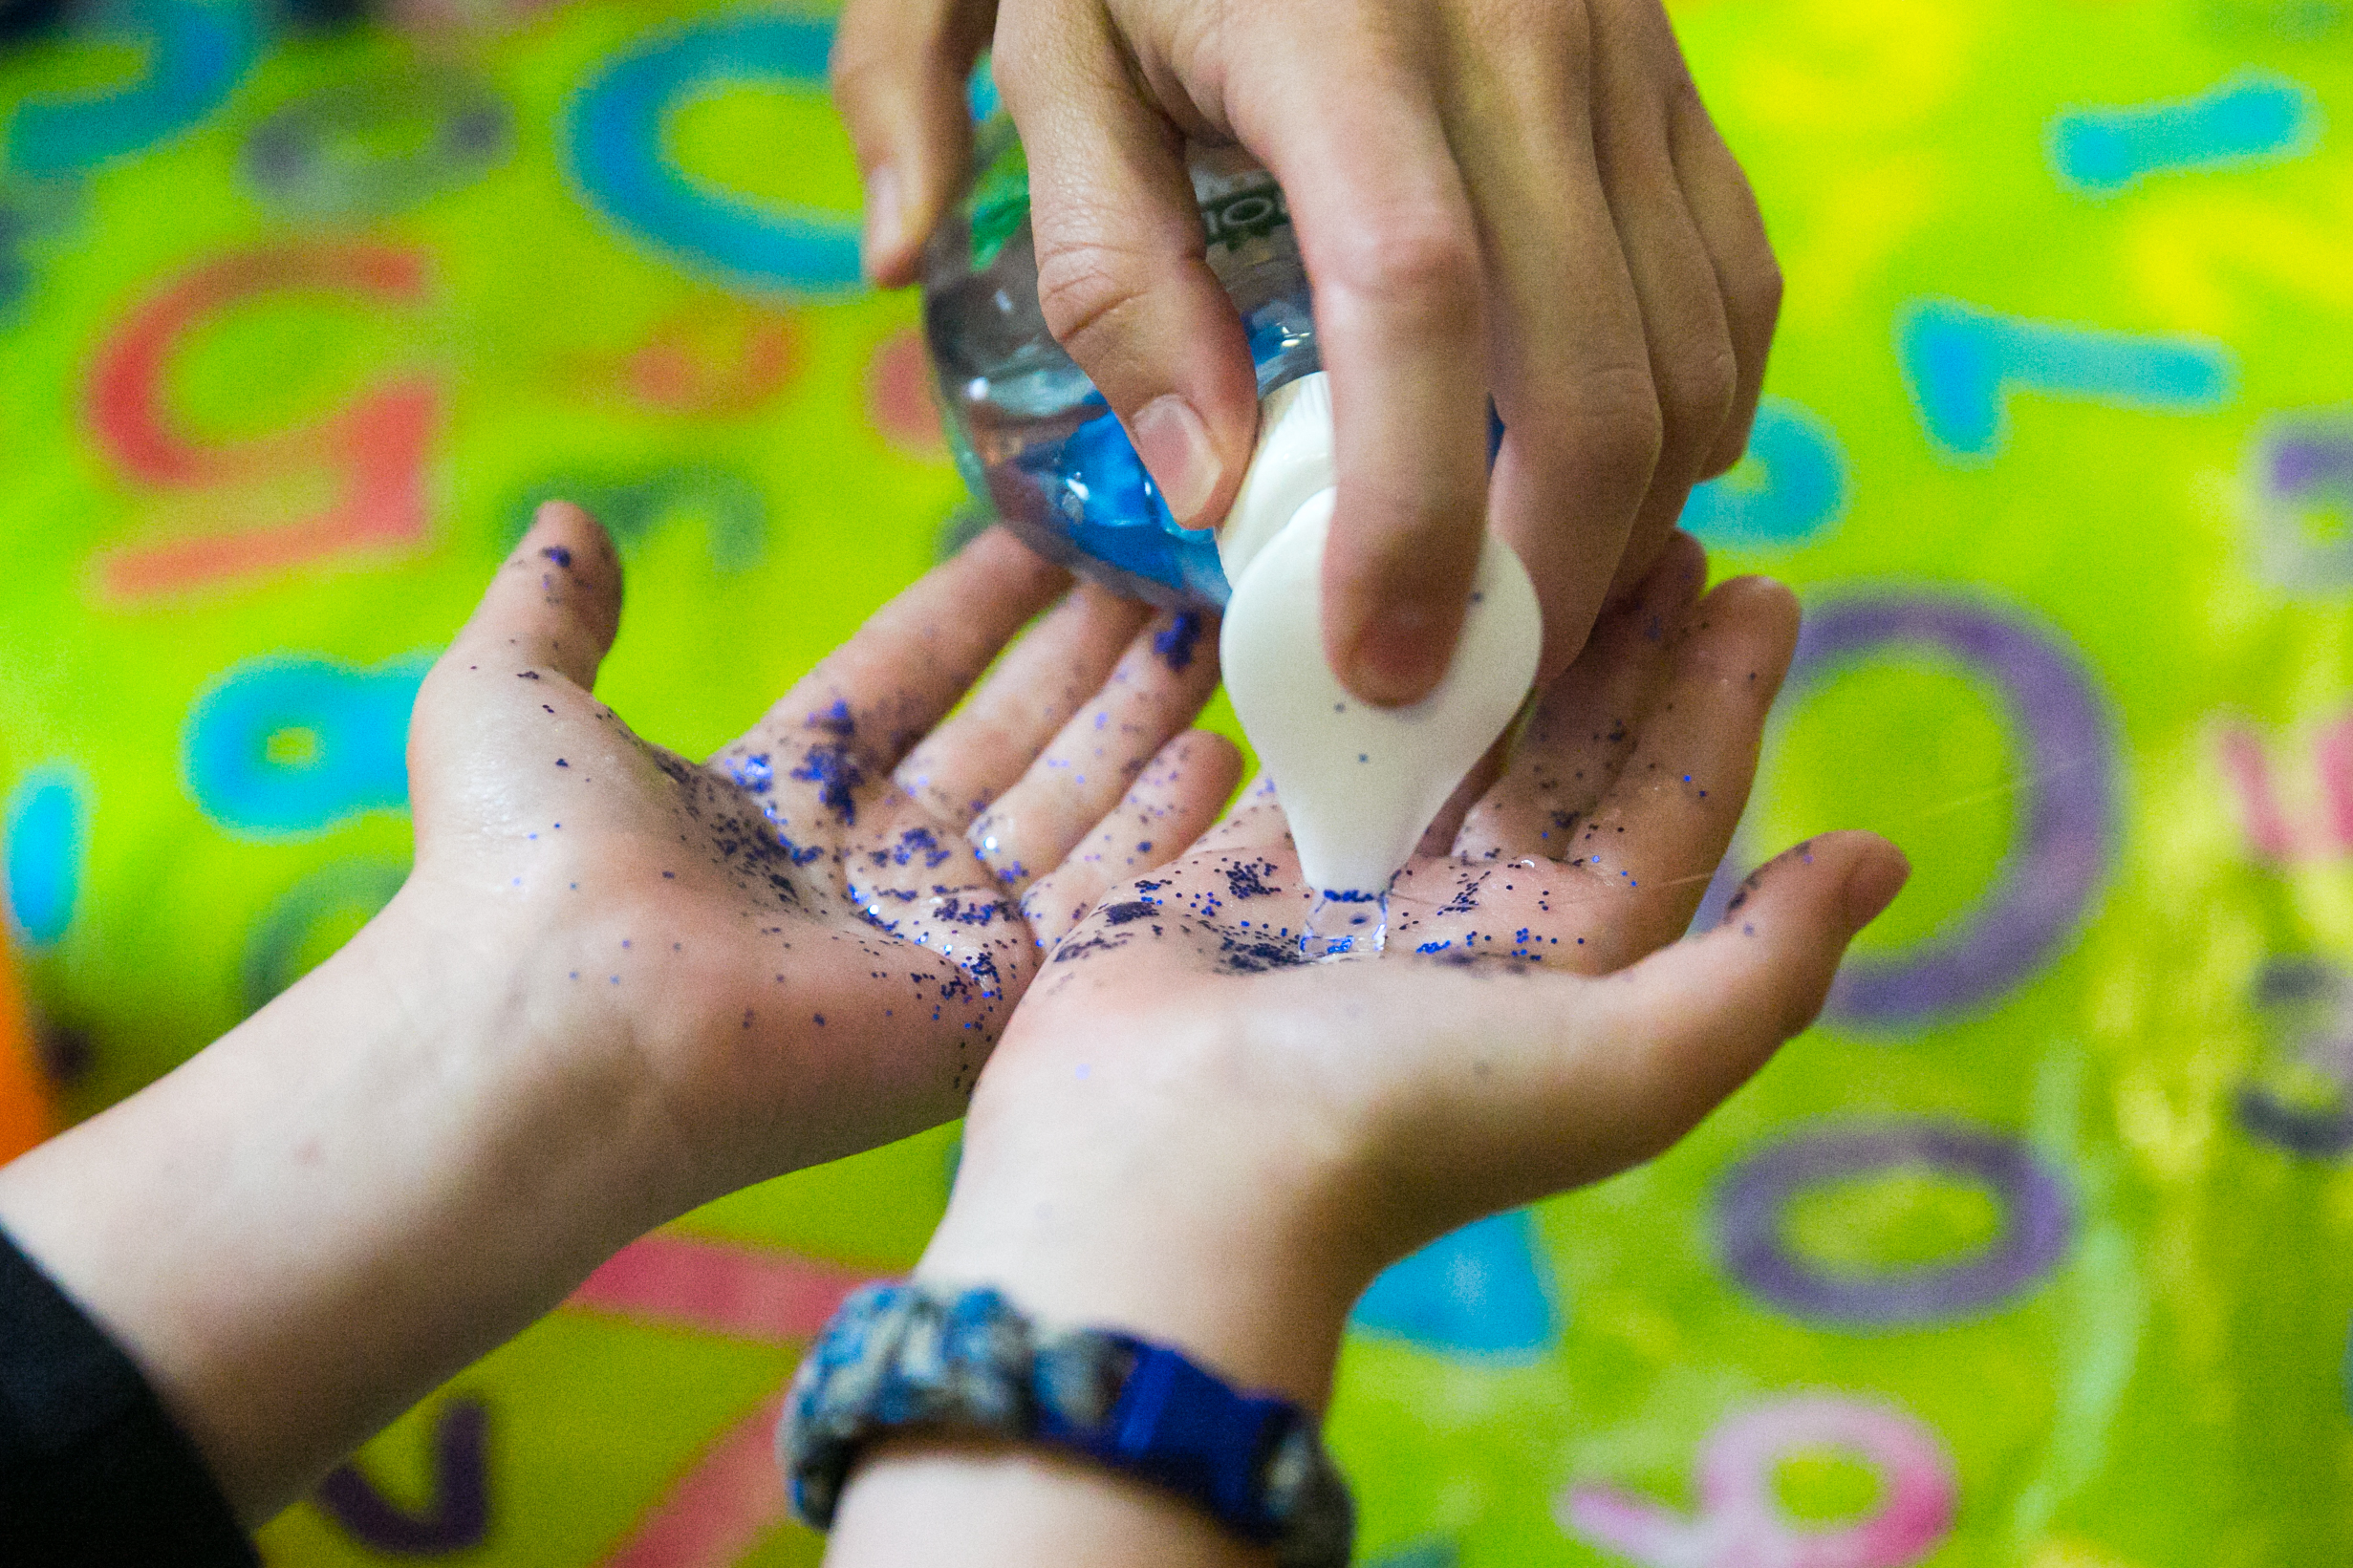 Using glitter to teach about how easily germs spread without washing your hands